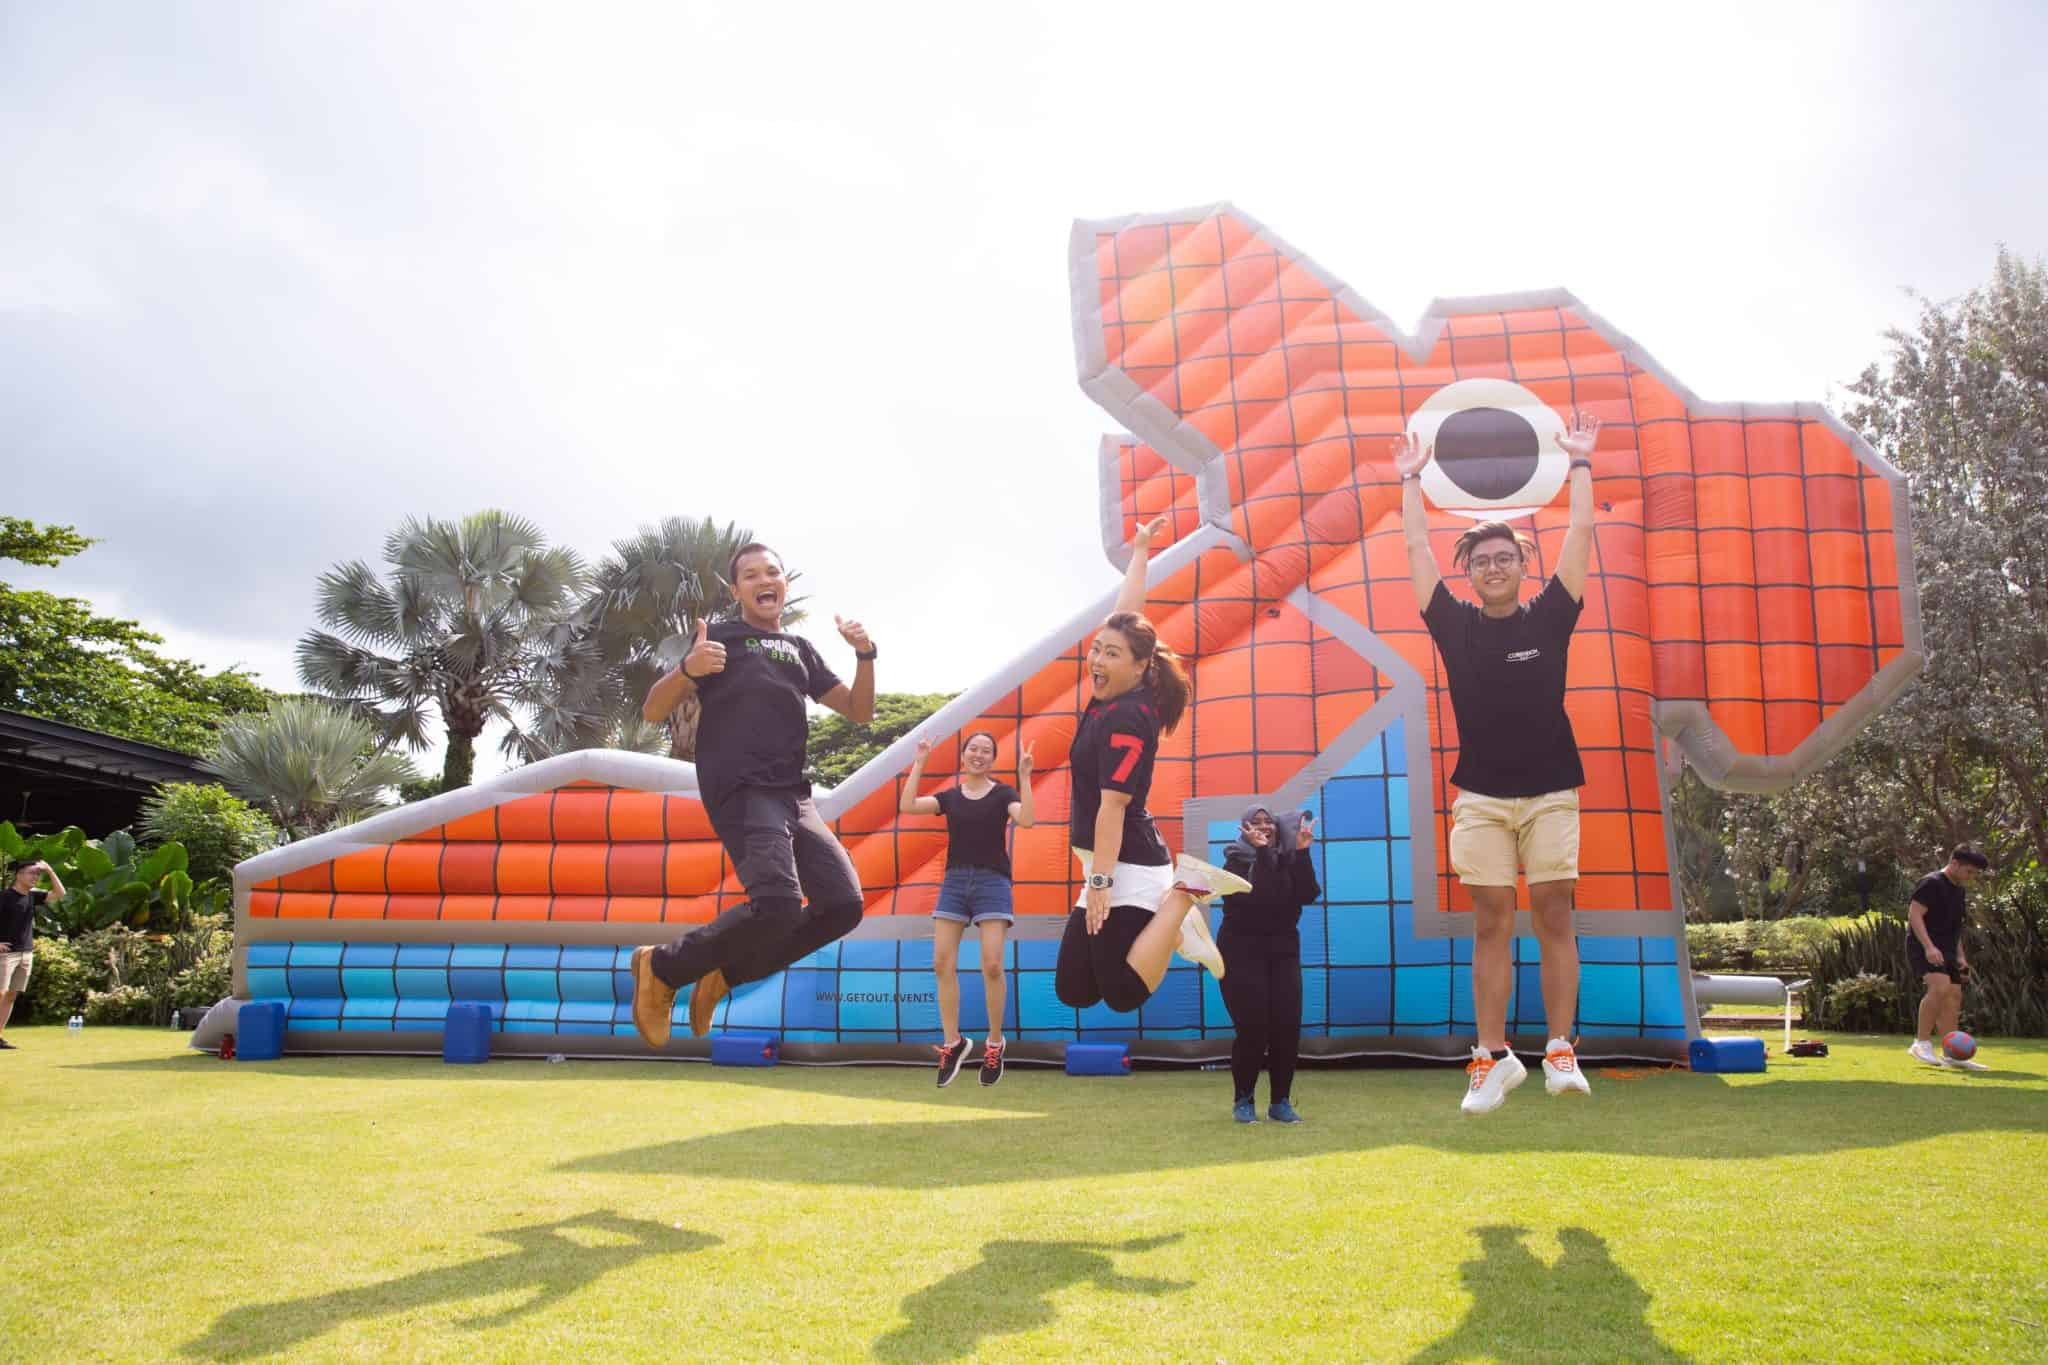 Giant Inflatable Bouncy Castle Rentals Singapore 2